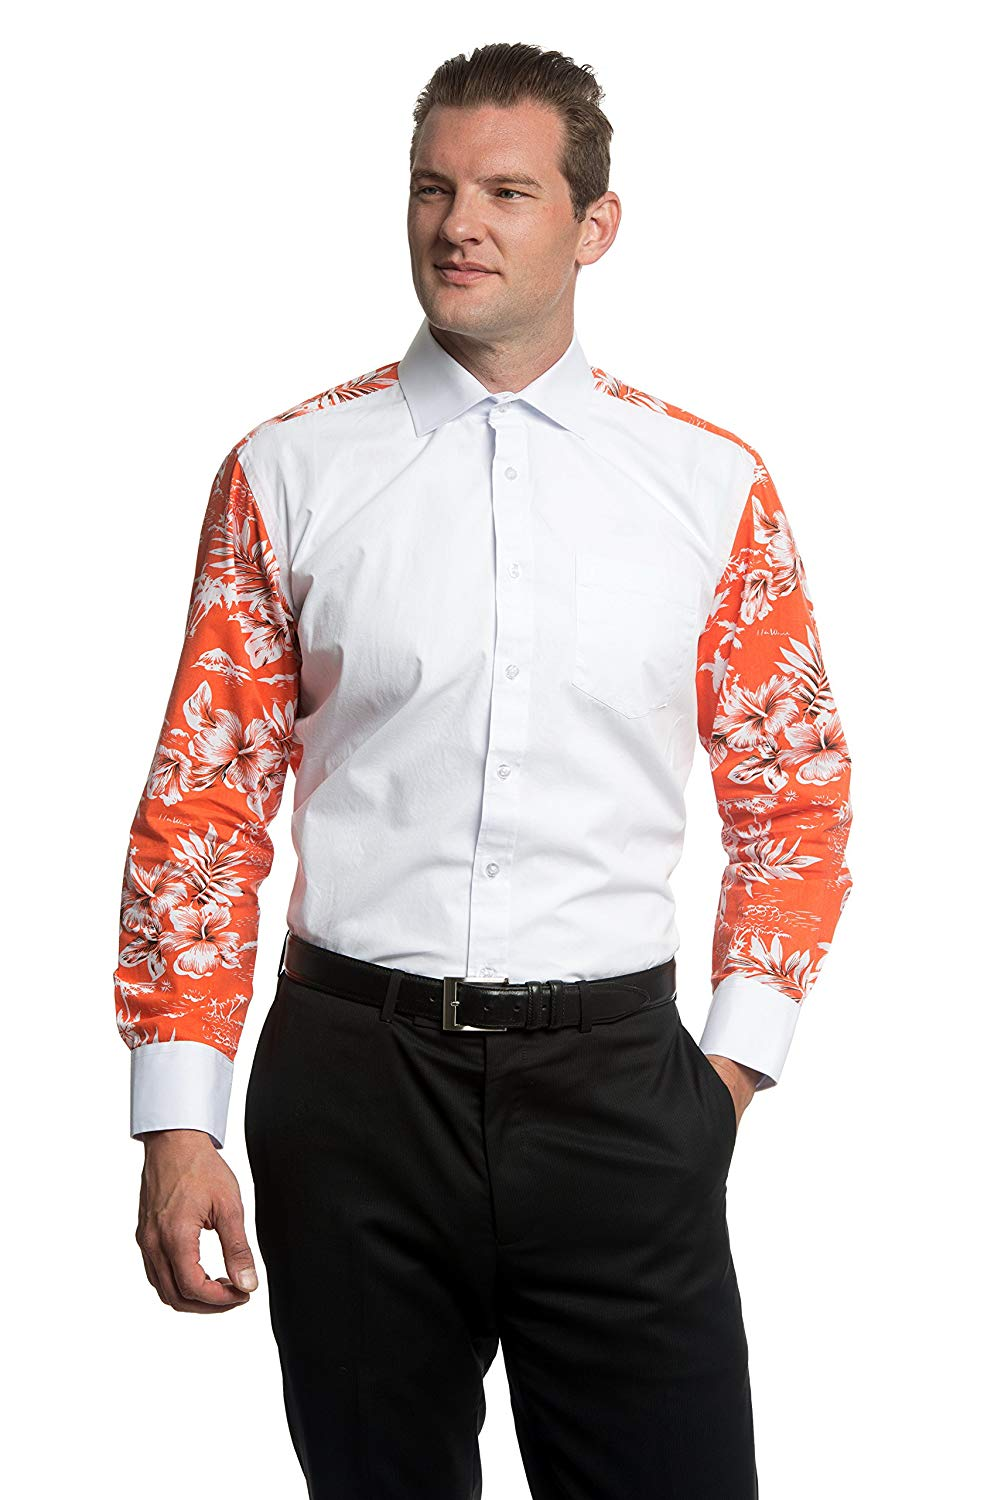 2dc16960dfb Get Quotations · White Dress Shirt and Party Shirt in One - Formal Wear  with Suit or Tuxedo